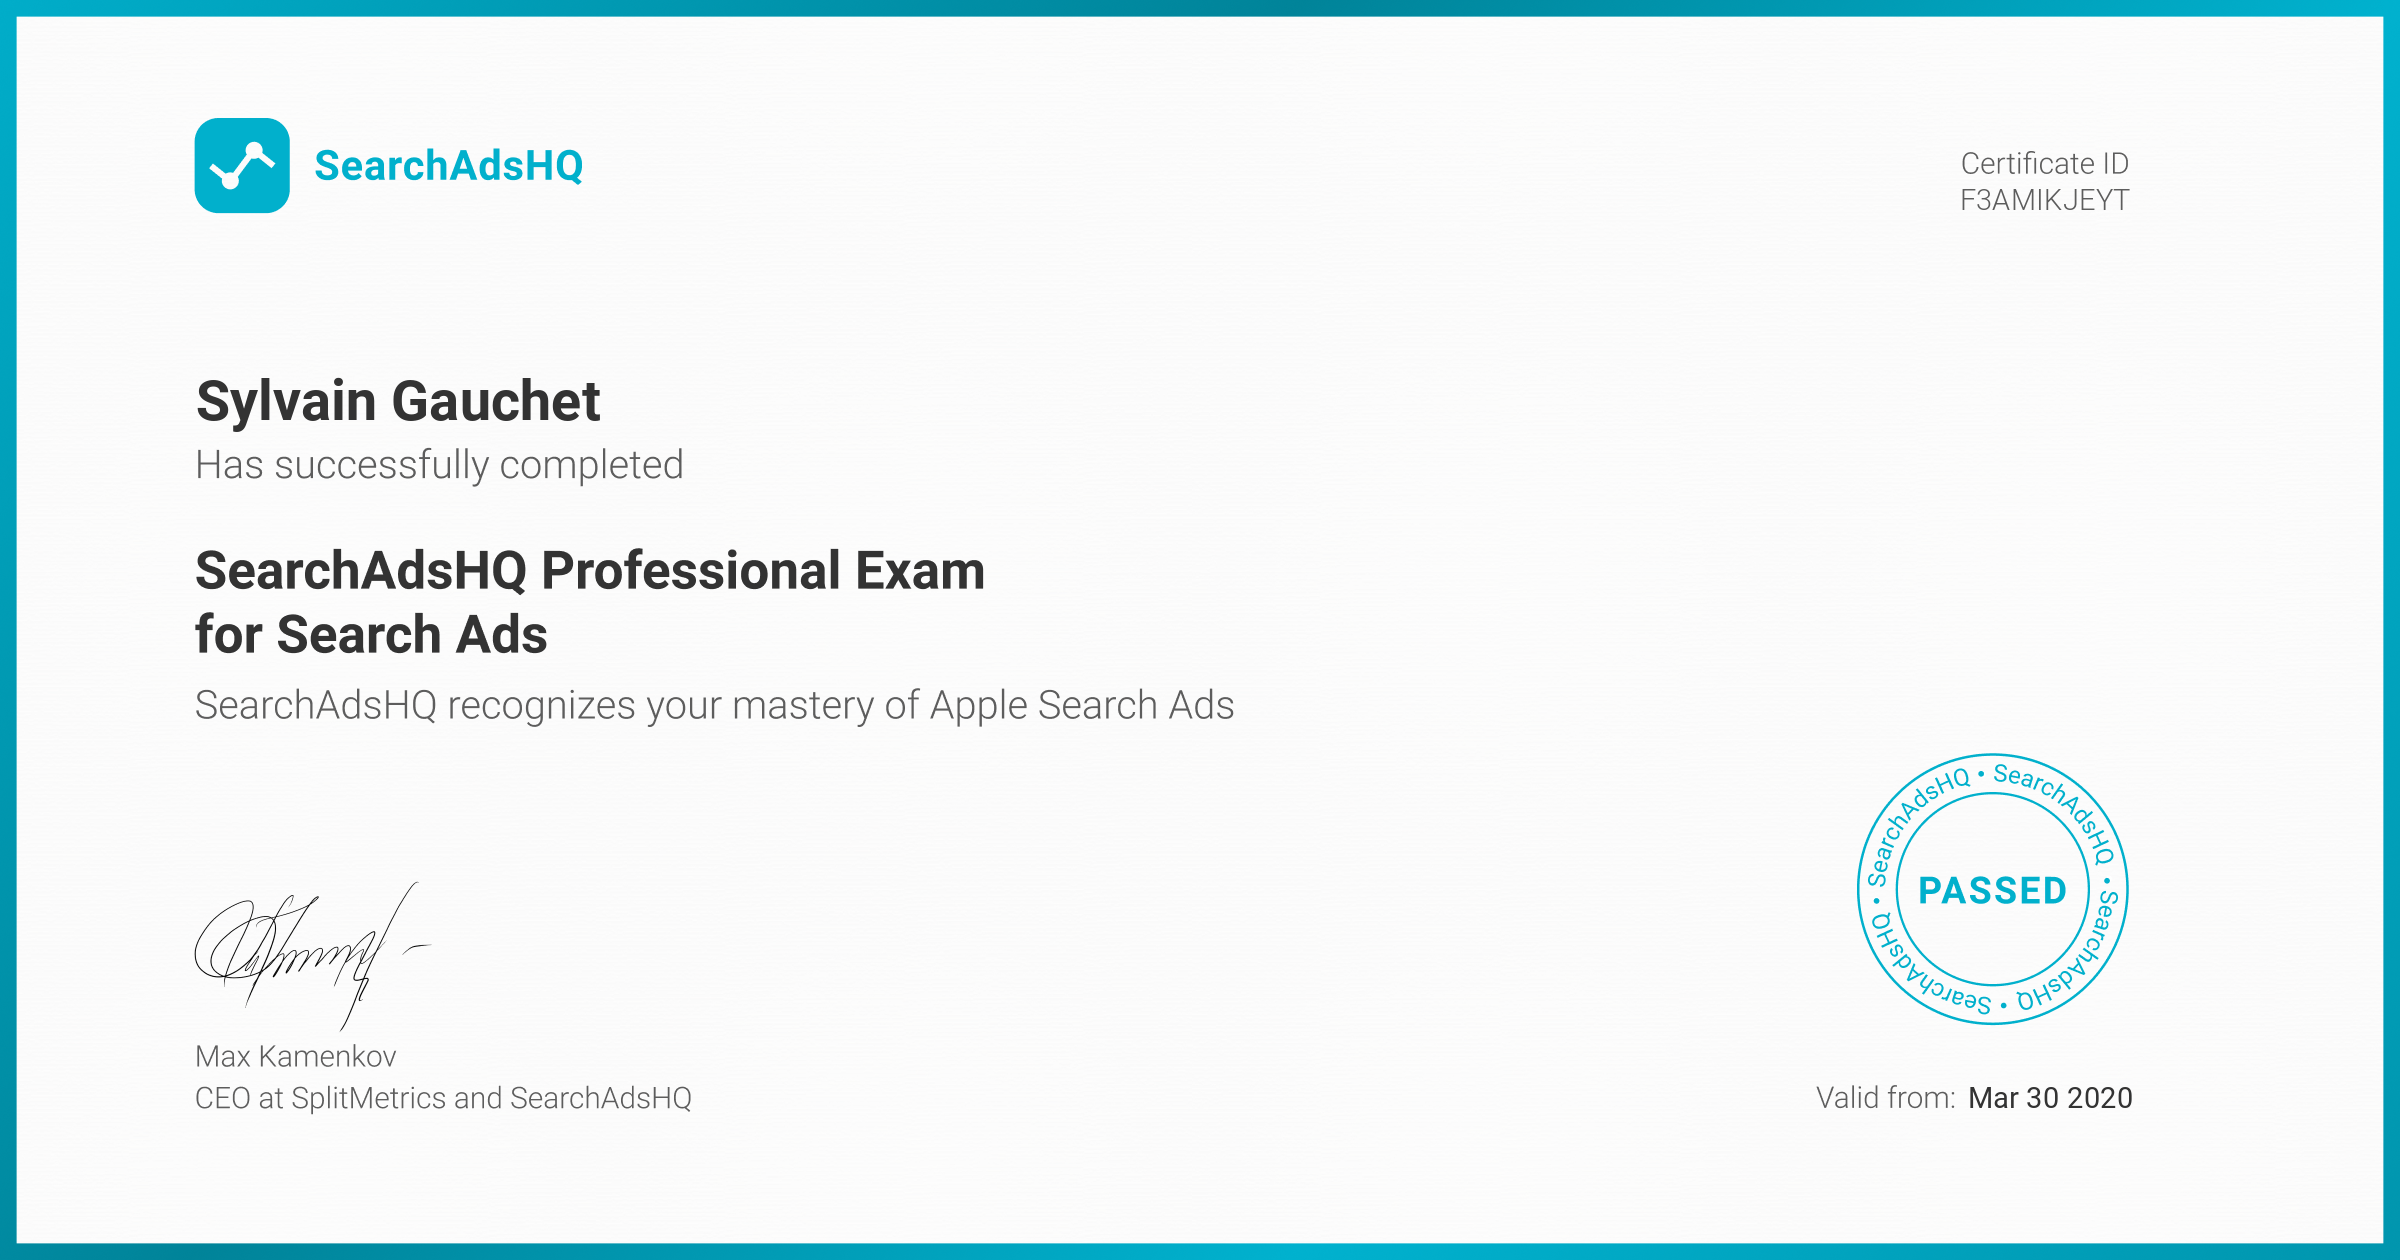 Certificate for Sylvain Gauchet | SearchAdsHQ Professional Exam for Search Ads